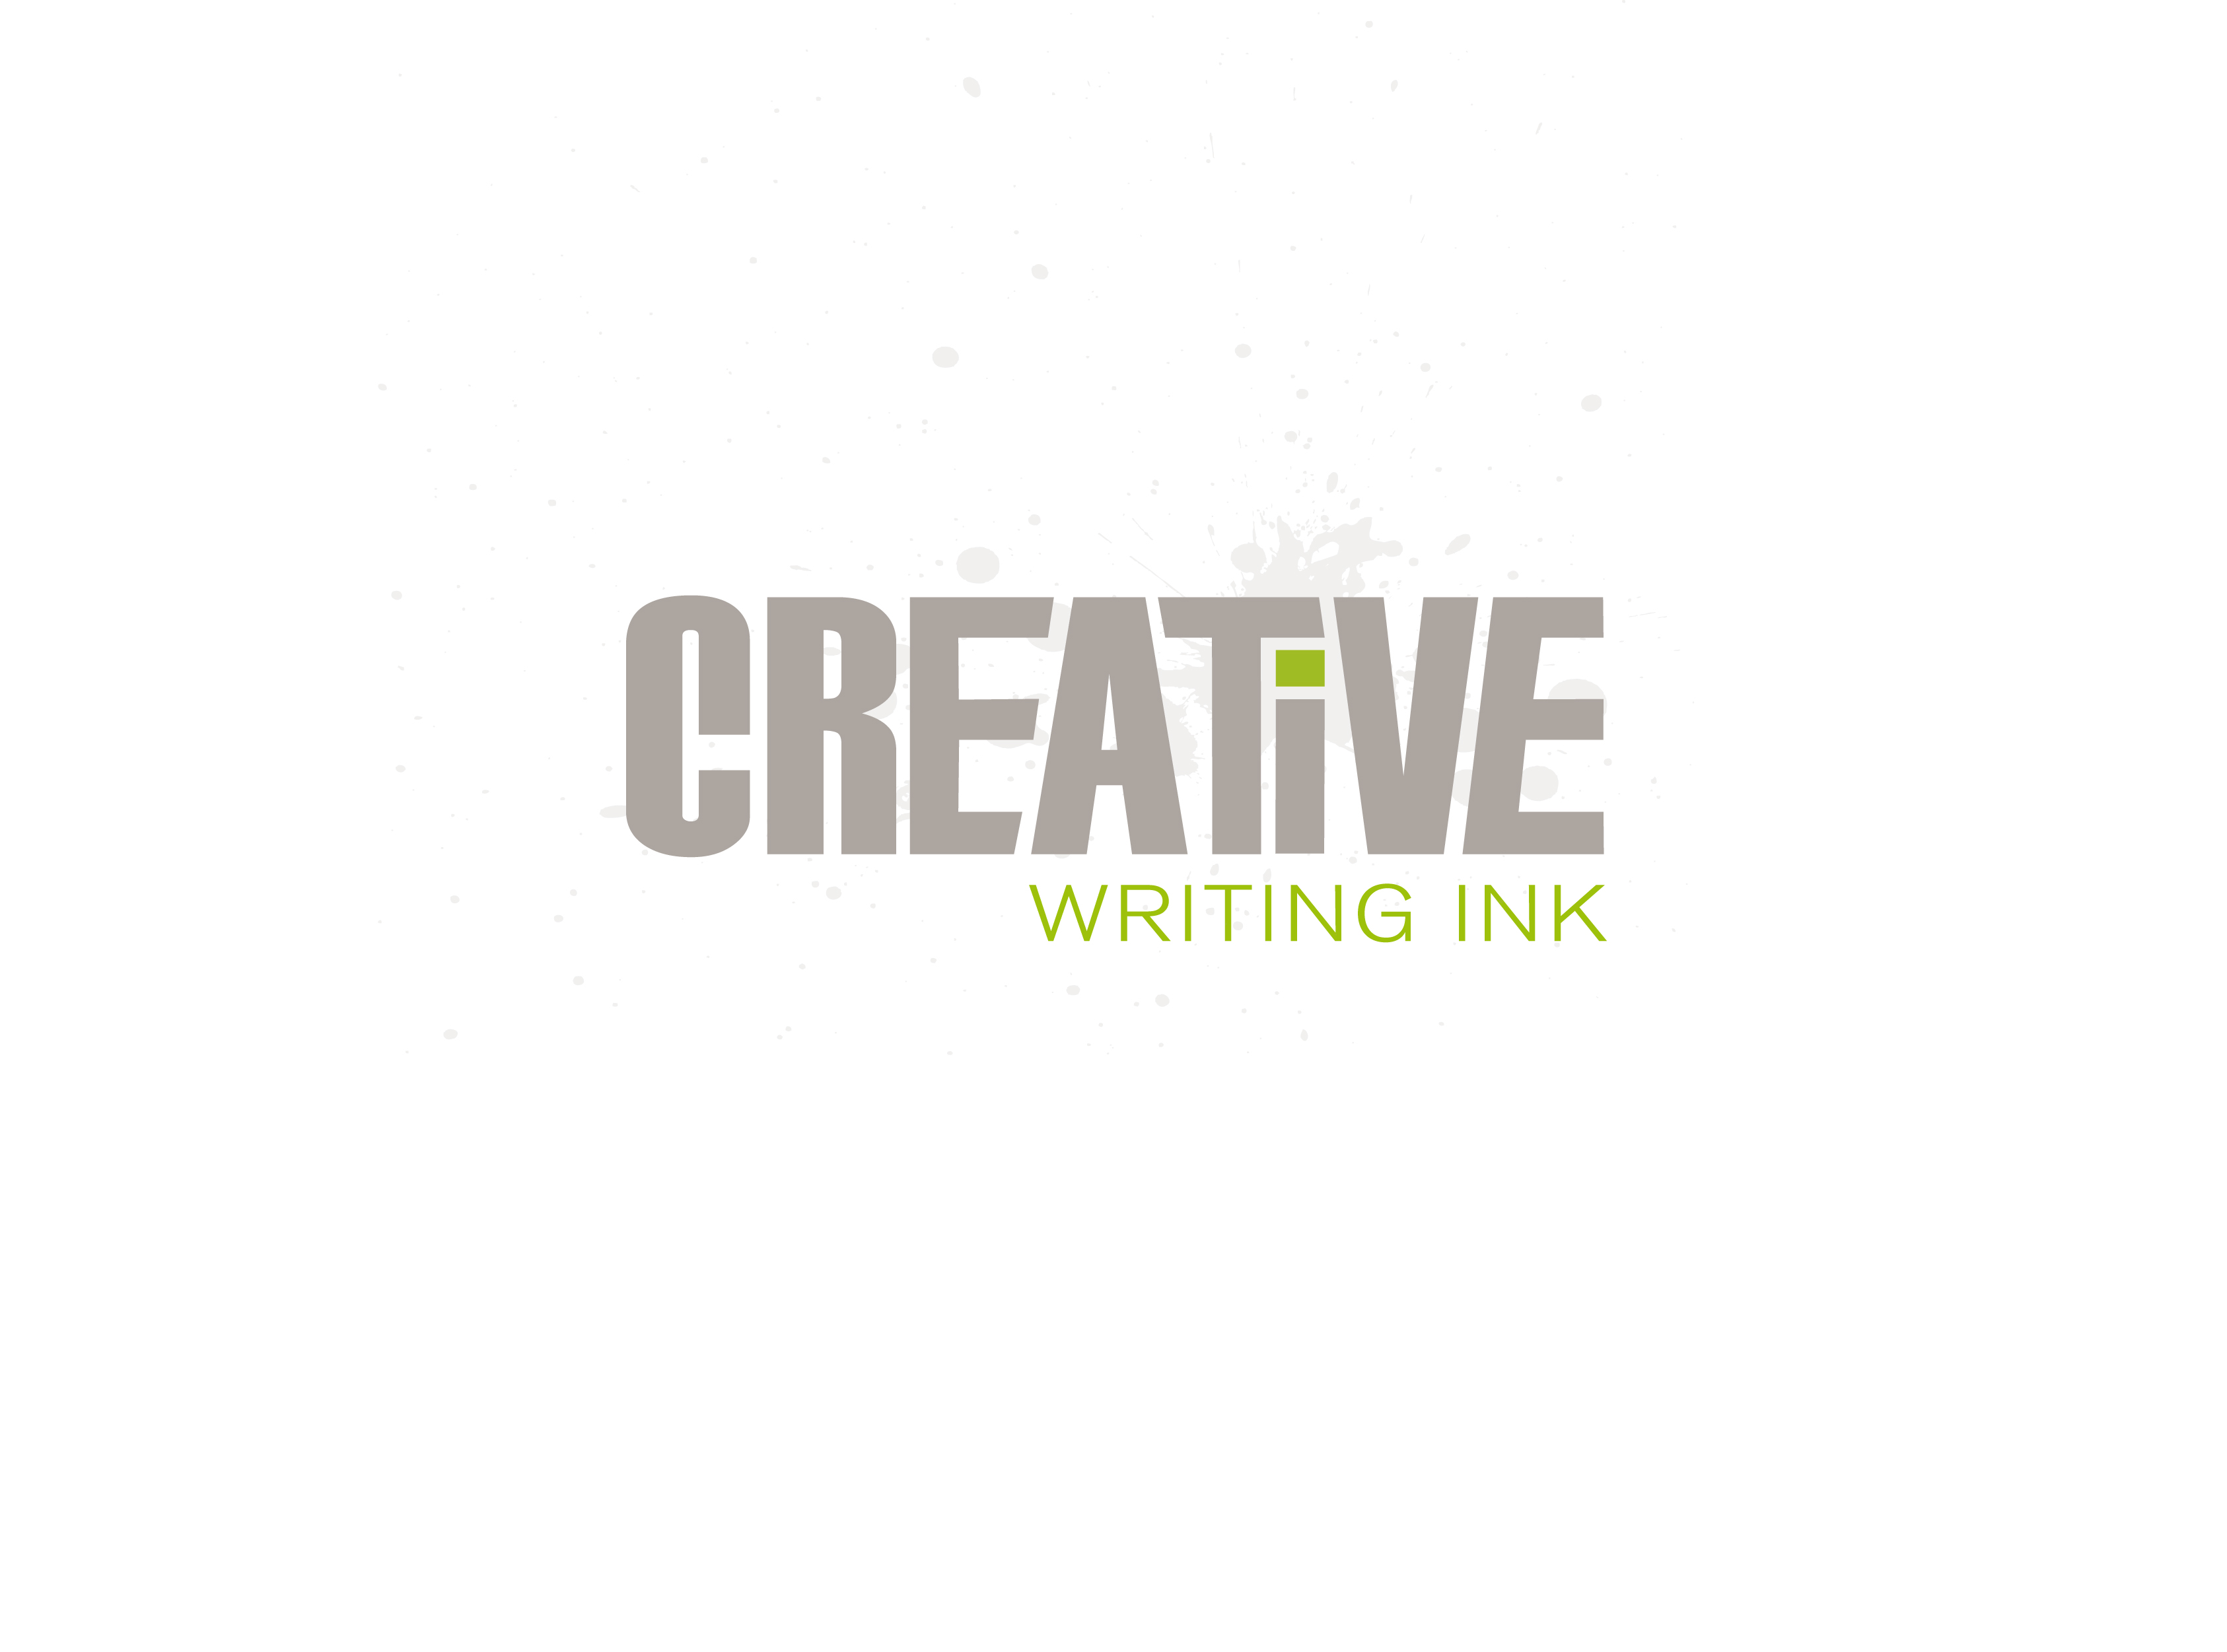 stanford online creative writing certificate The graduate certificate in creative writing is a twelve (12) credit hour  phd, stanford university, 1996, spanish, english, and mexican american studies.